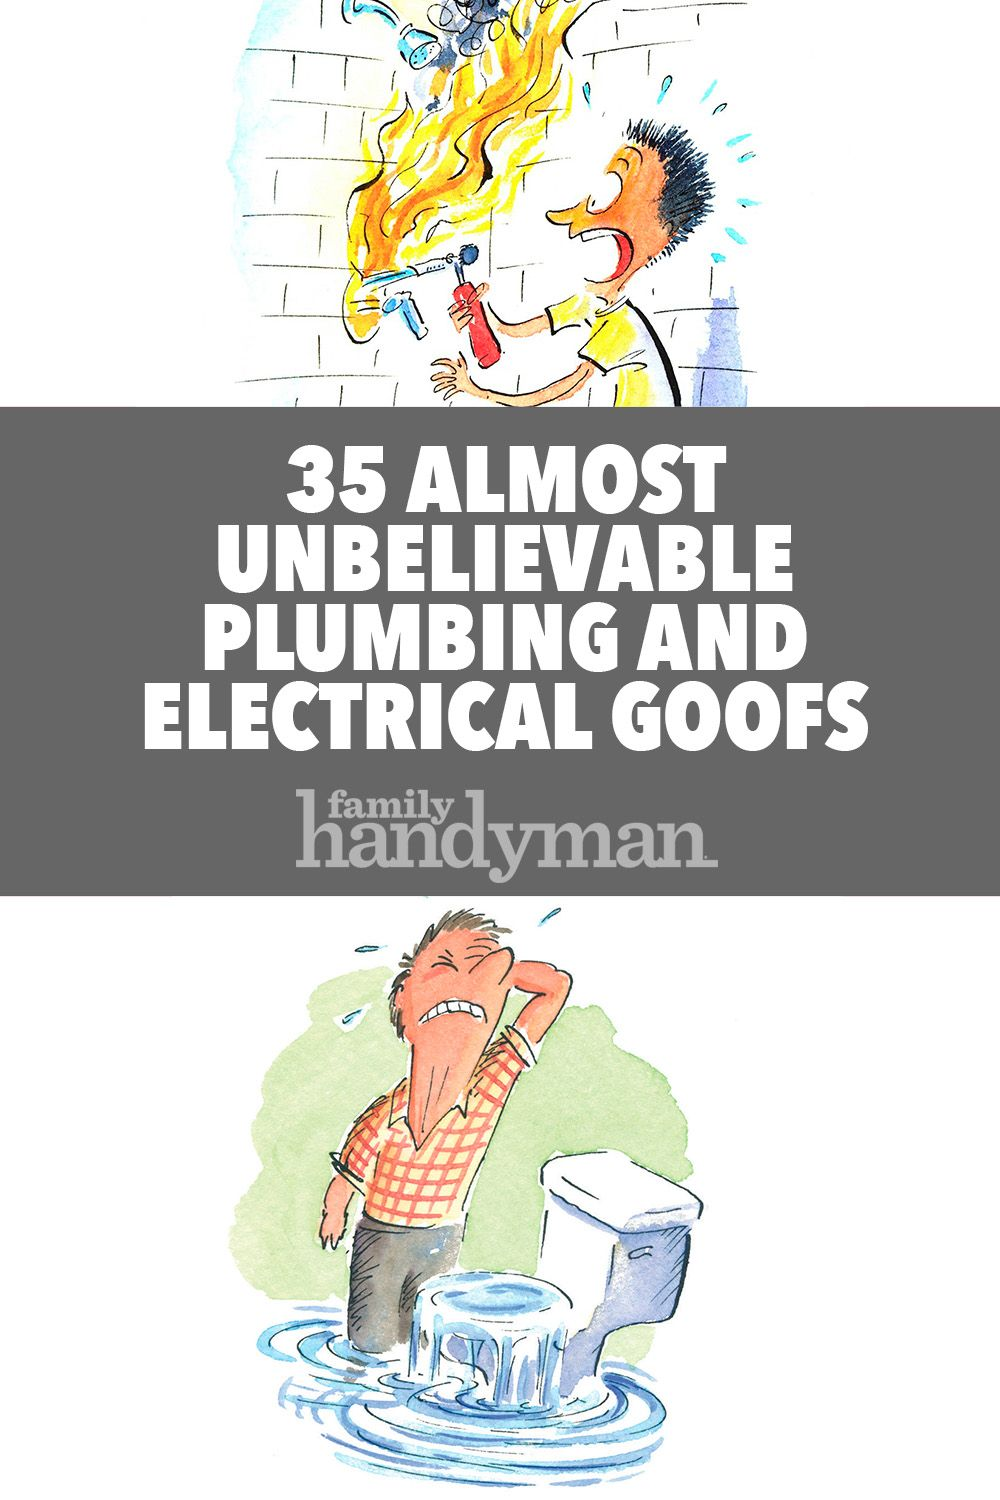 36 Almost Unbelievable Plumbing And Electrical Goofs Plumbing Electricity Goof